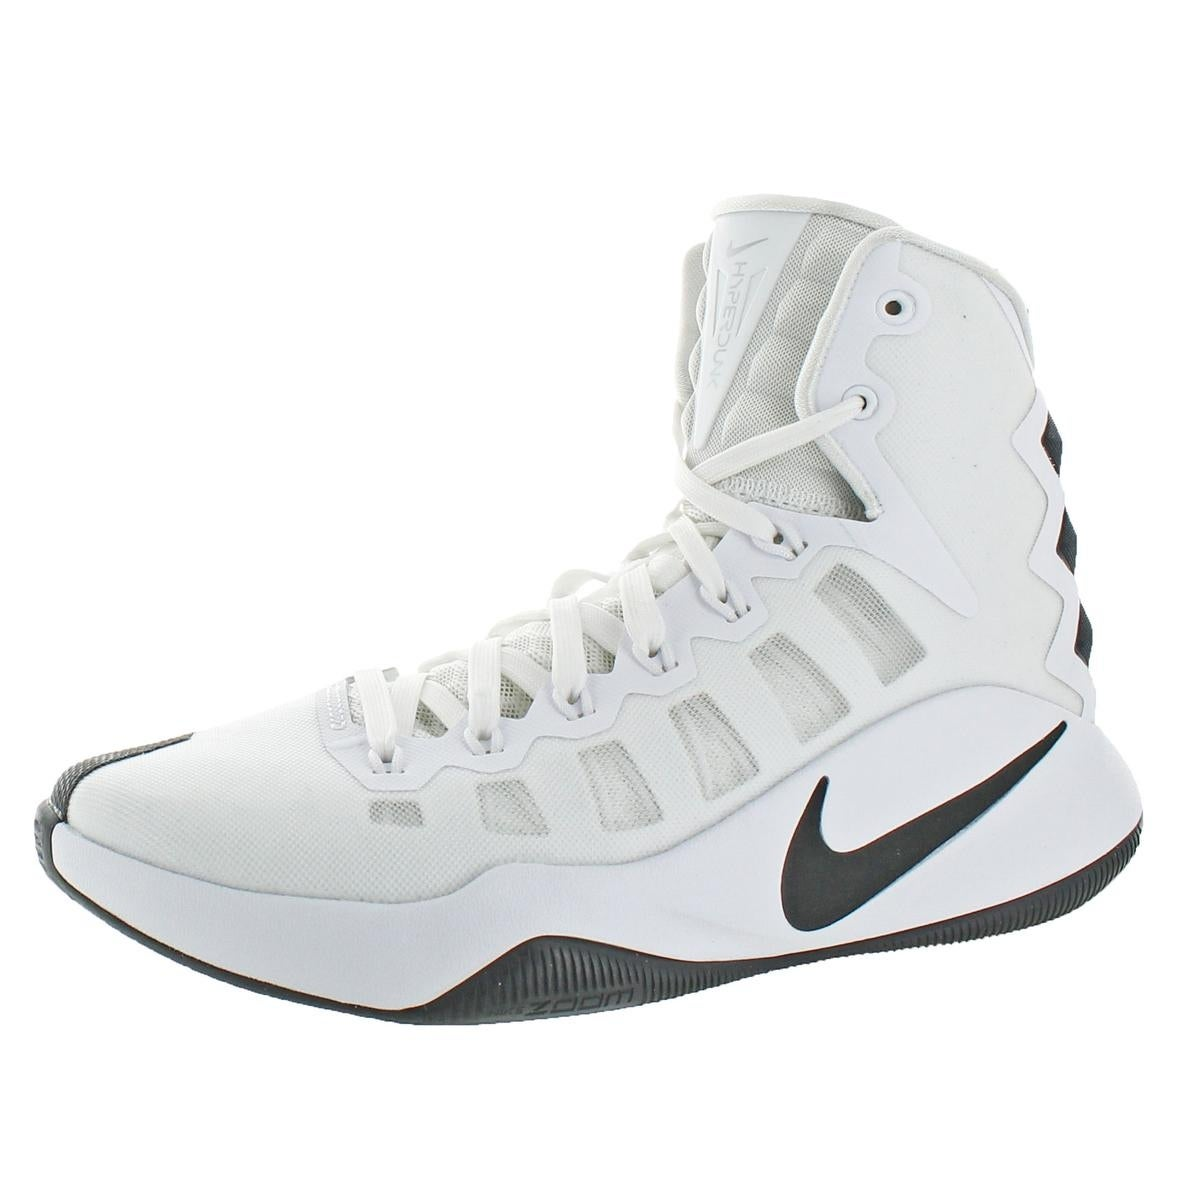 75355563014c Shop Nike Womens Hyperdunk 2016 TB Basketball Shoes Nike Zoom Mid Top -  Free Shipping On Orders Over  45 - Overstock - 21803225